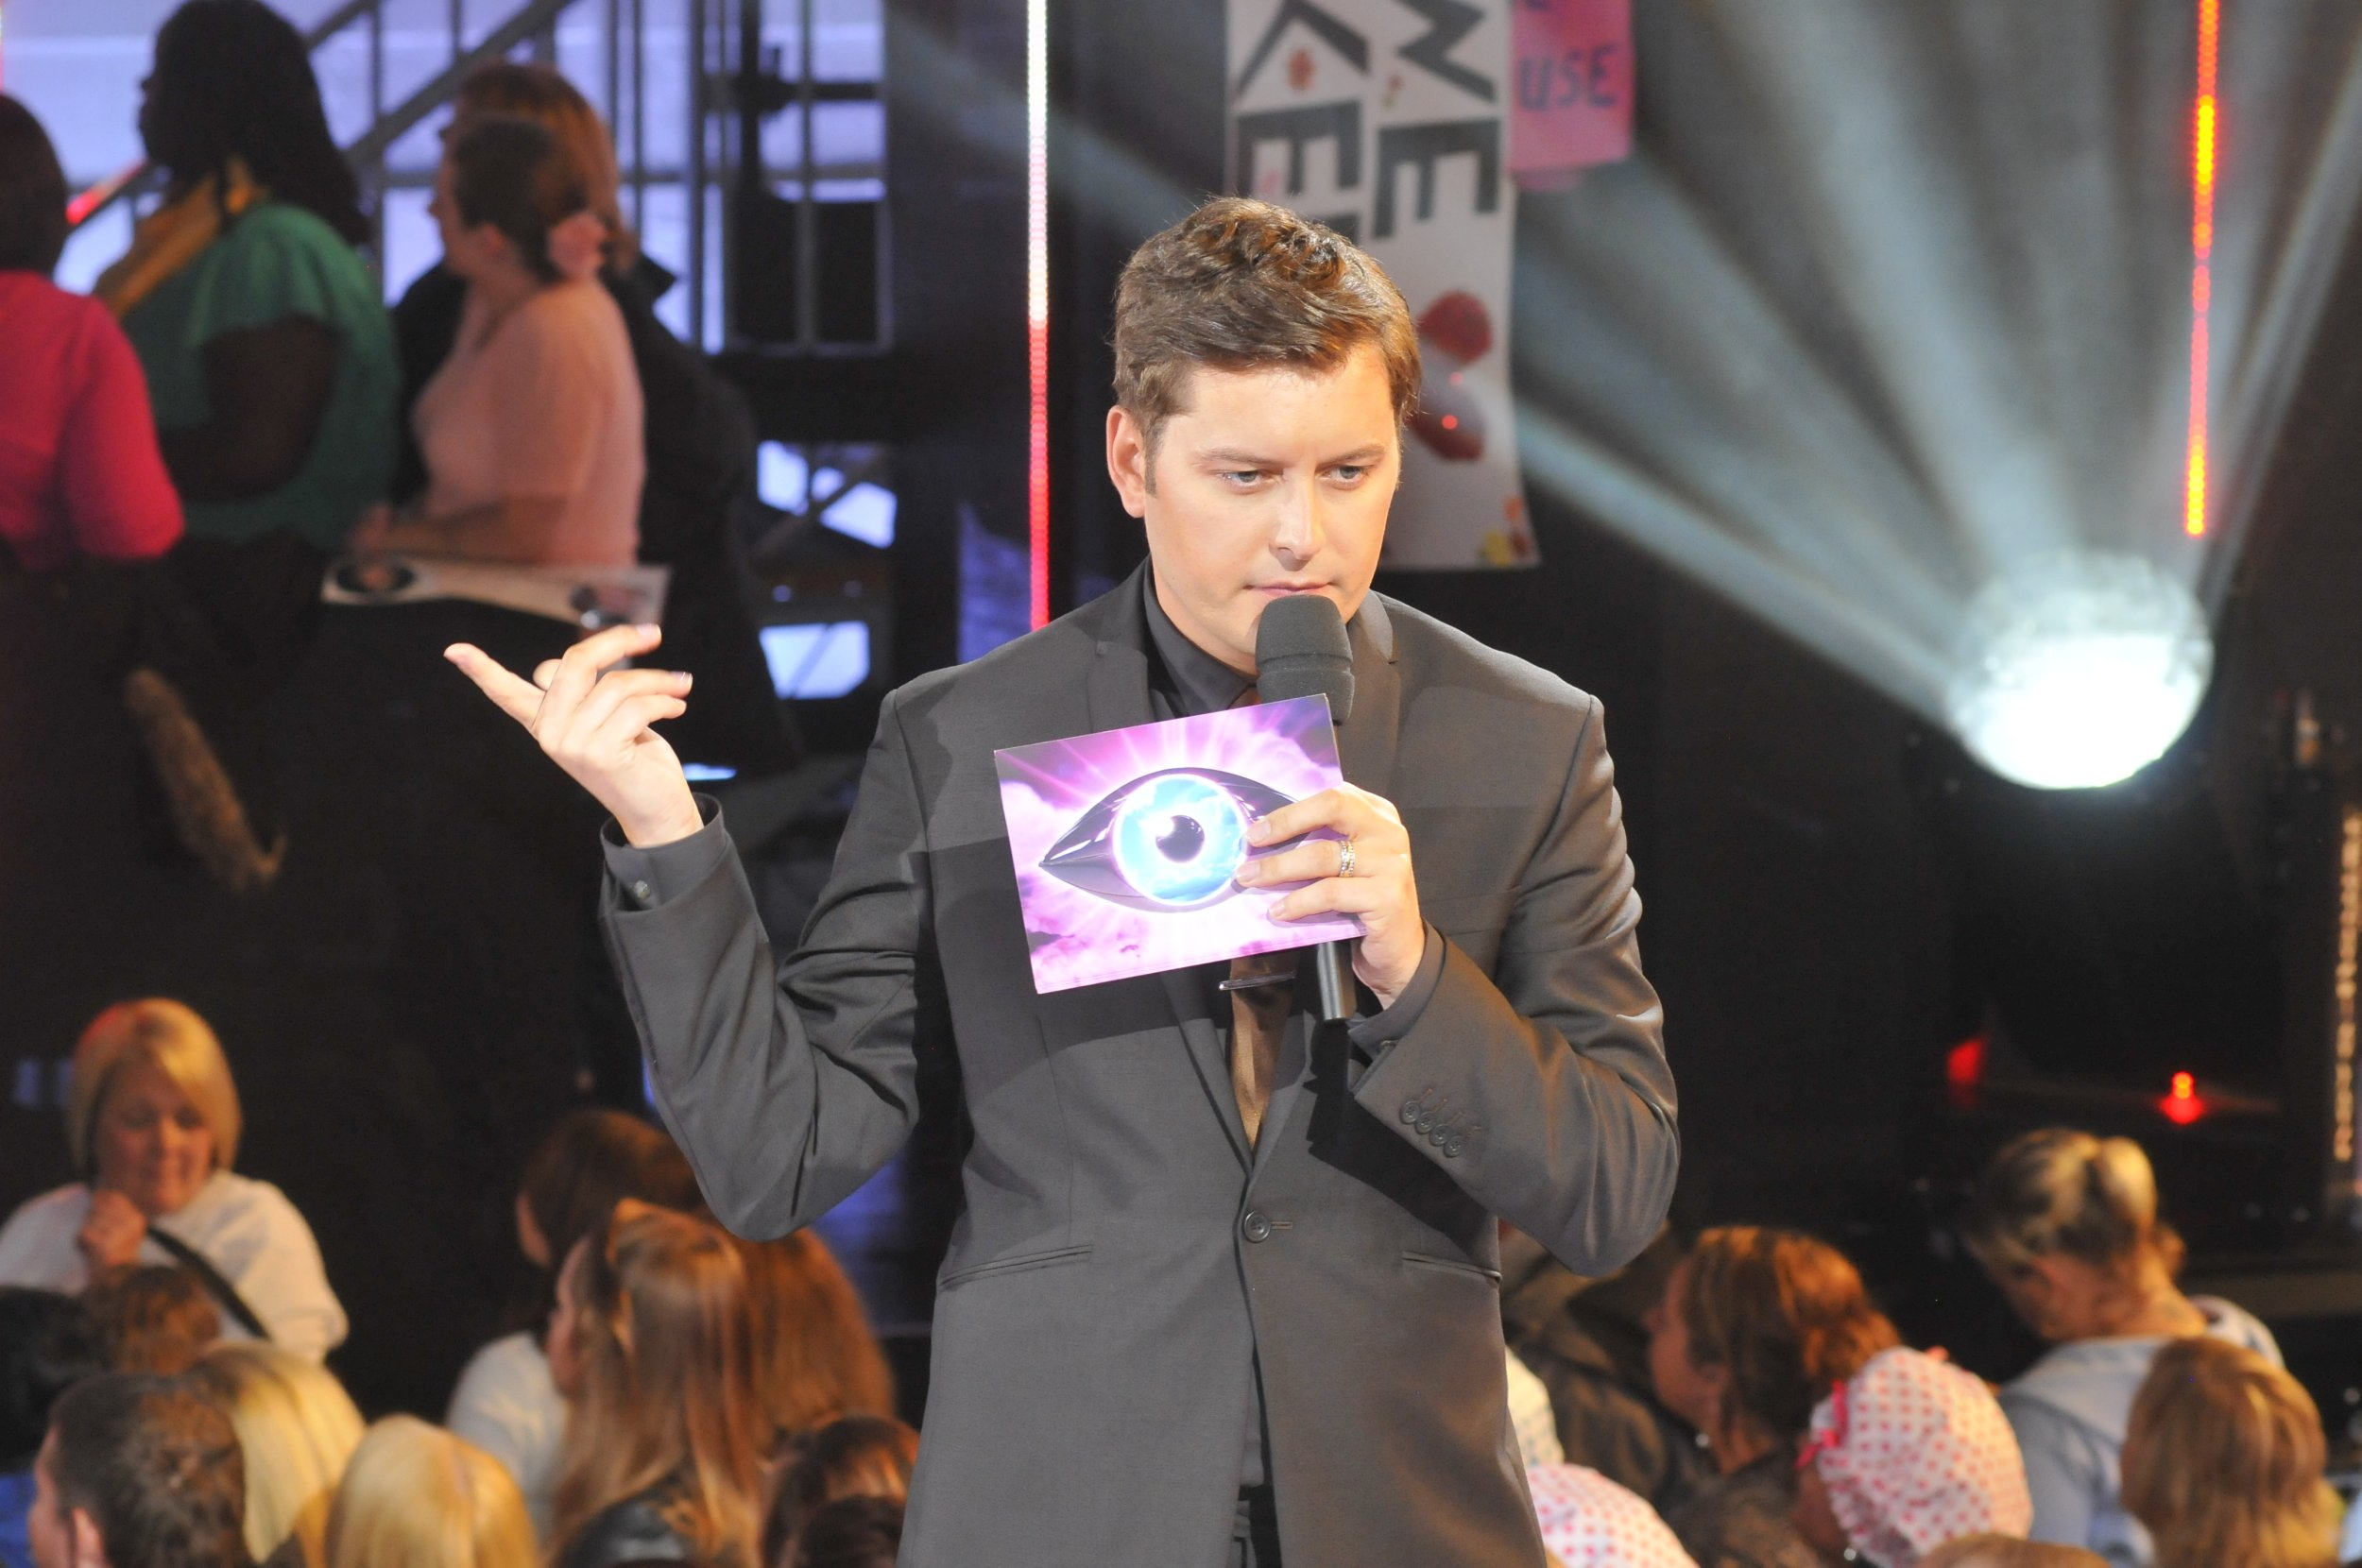 Brian Dowling has some choice words for his former show Big Brother